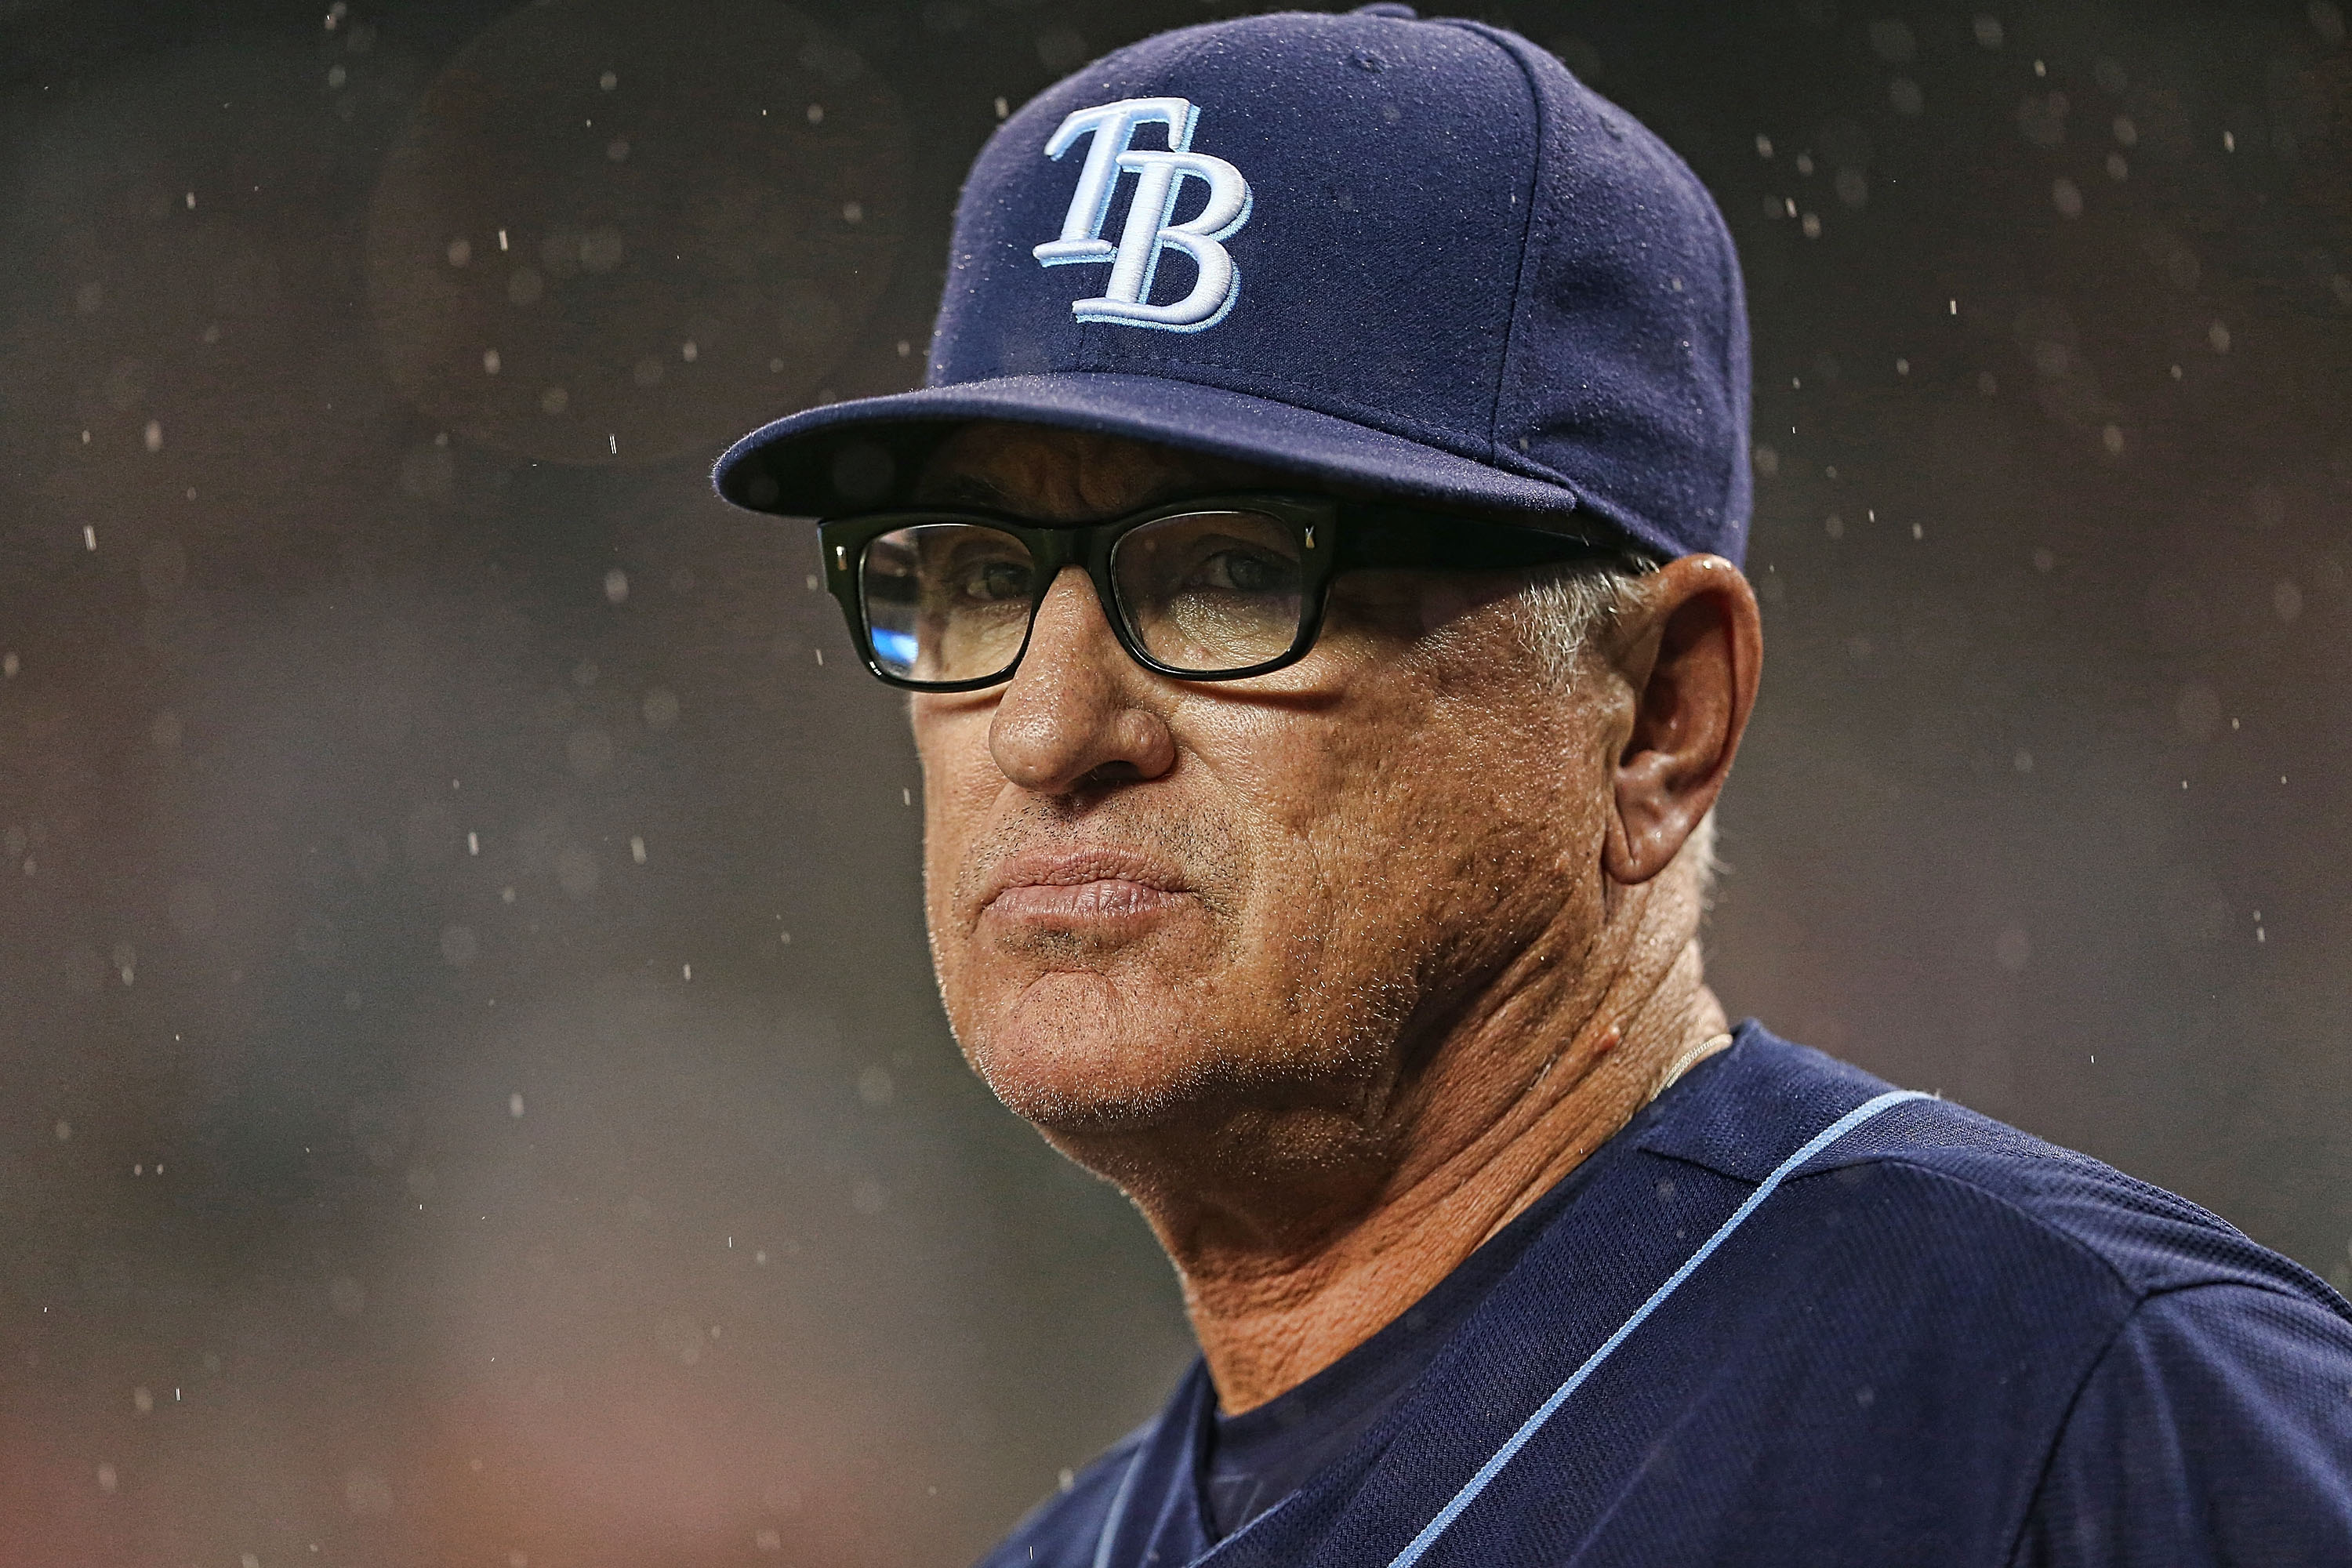 Because of the deal on Monday, Rays manager Joe Maddon won't be able to sign players to more than a $300,000 contract for the next two signing periods.